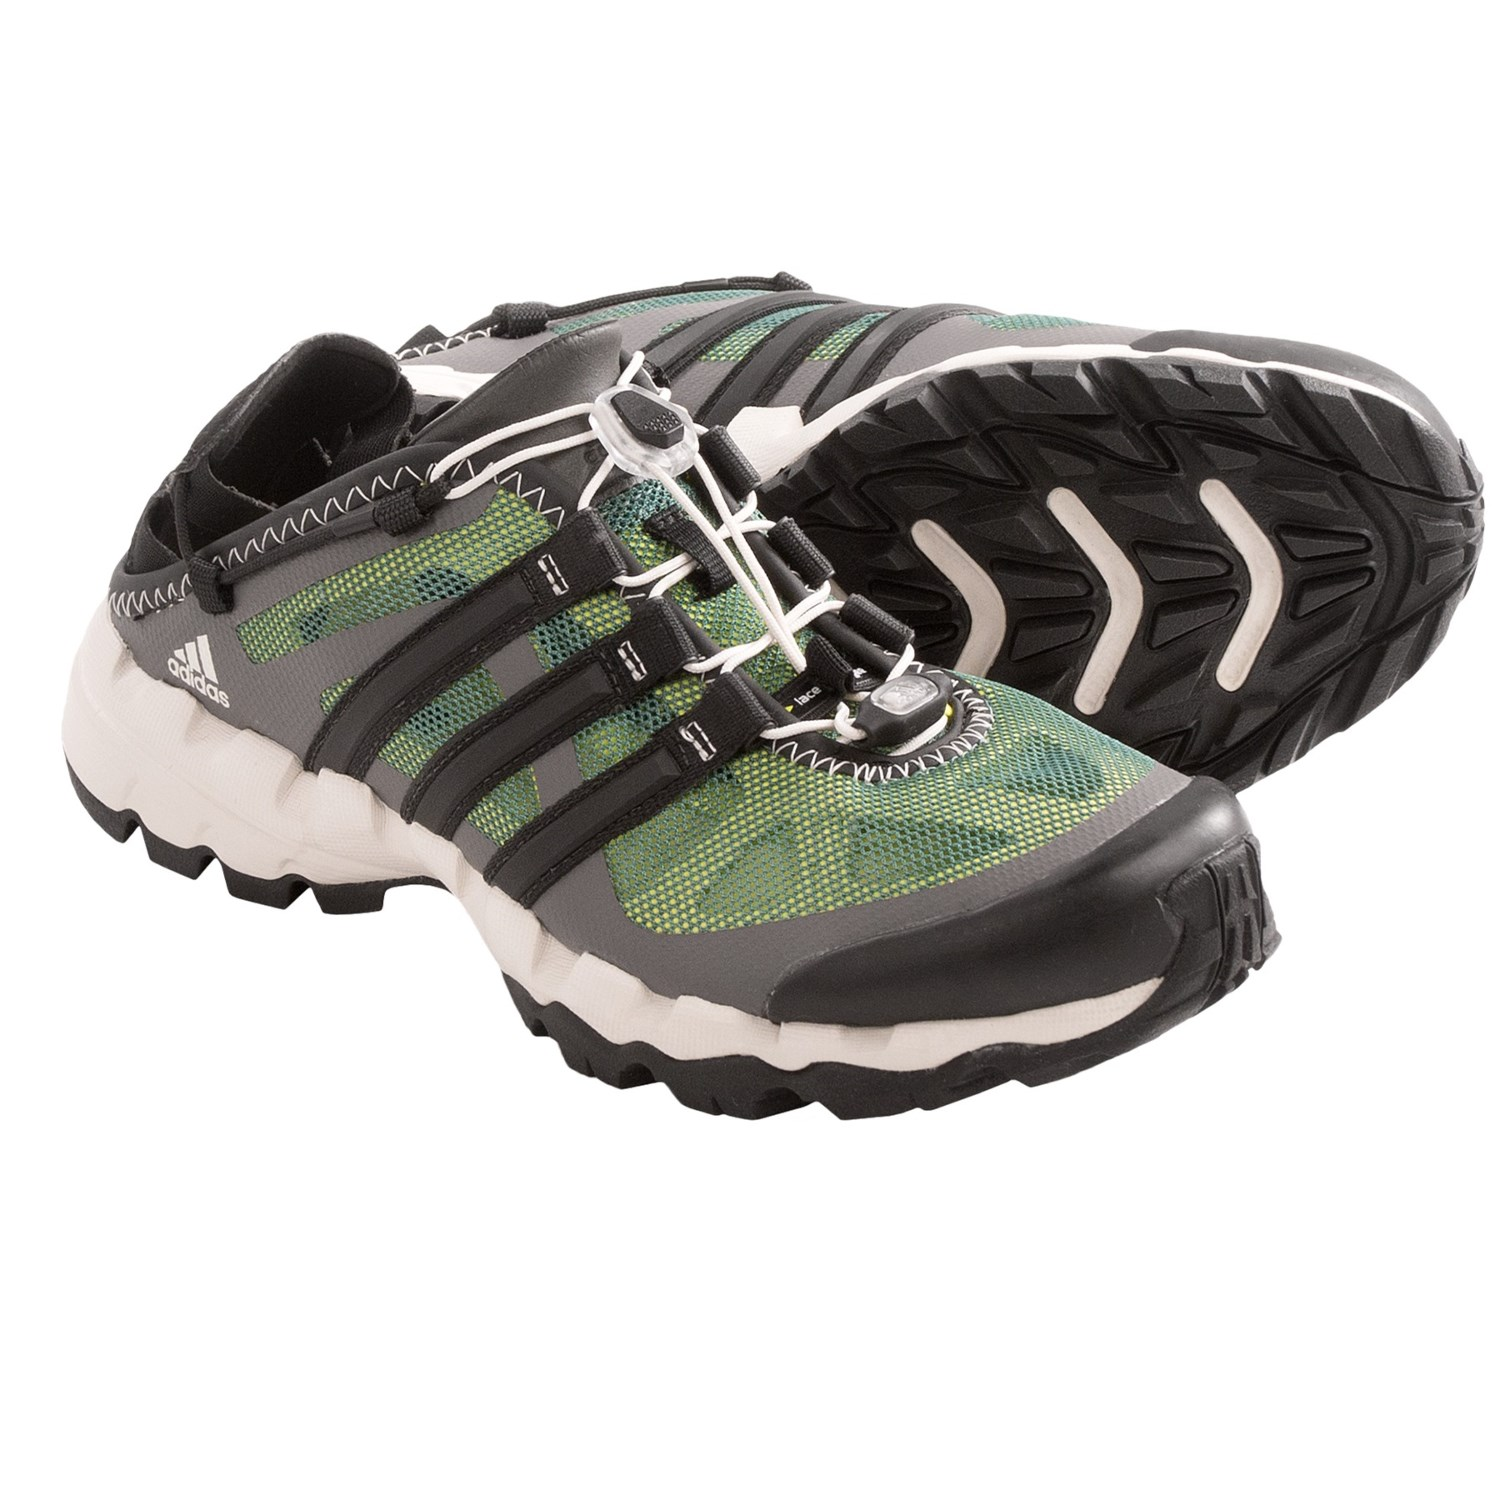 Adidas Water Shoe Review